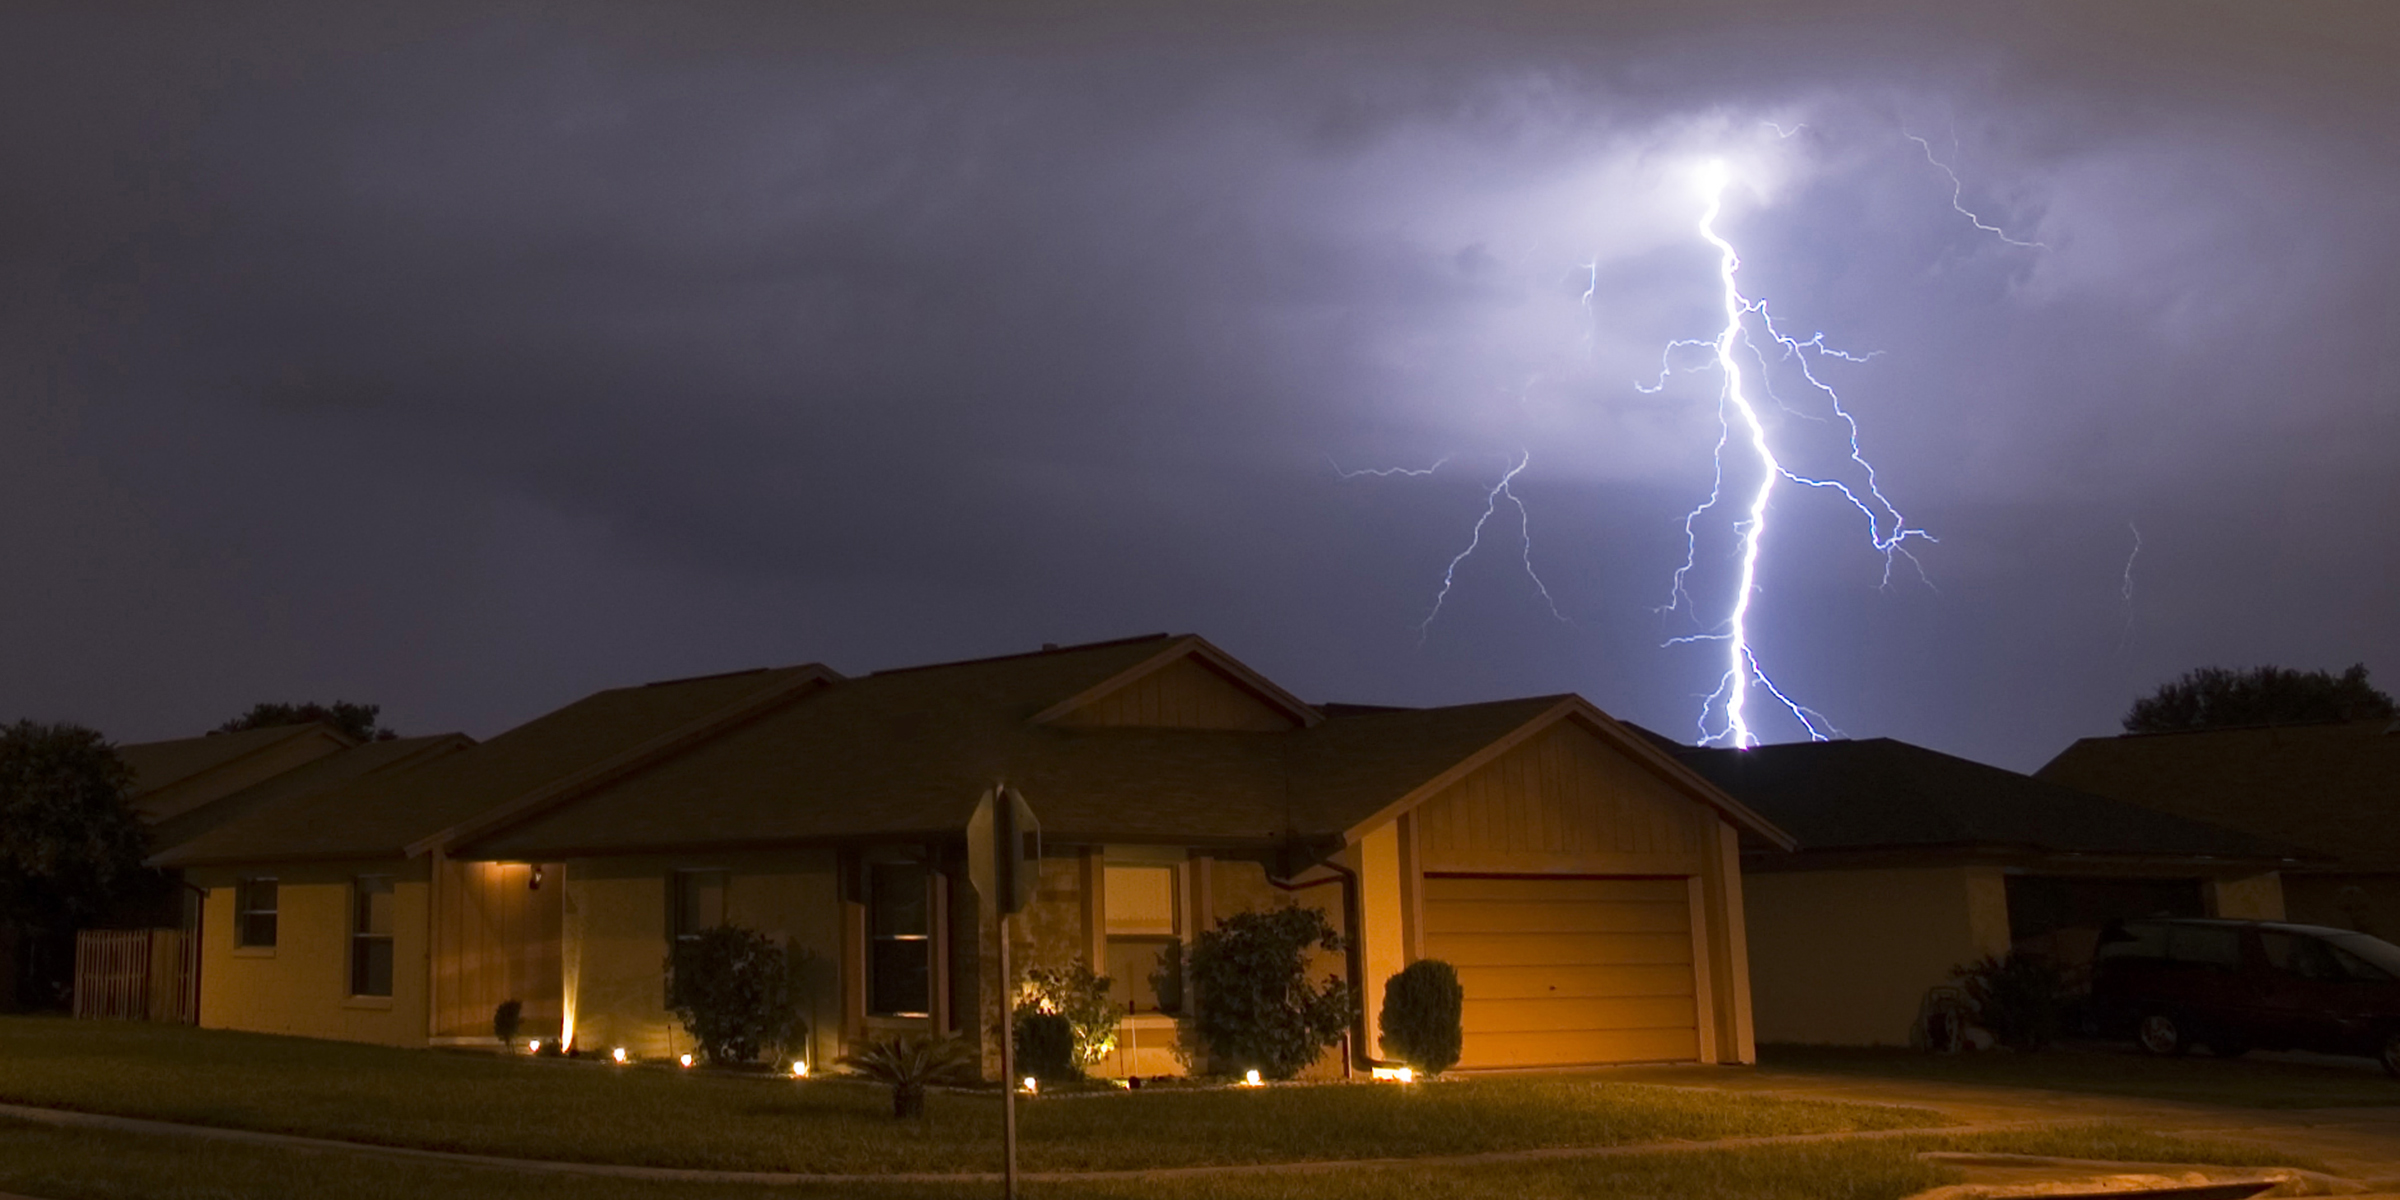 How to not get struck by lightning: Avoid these common myths